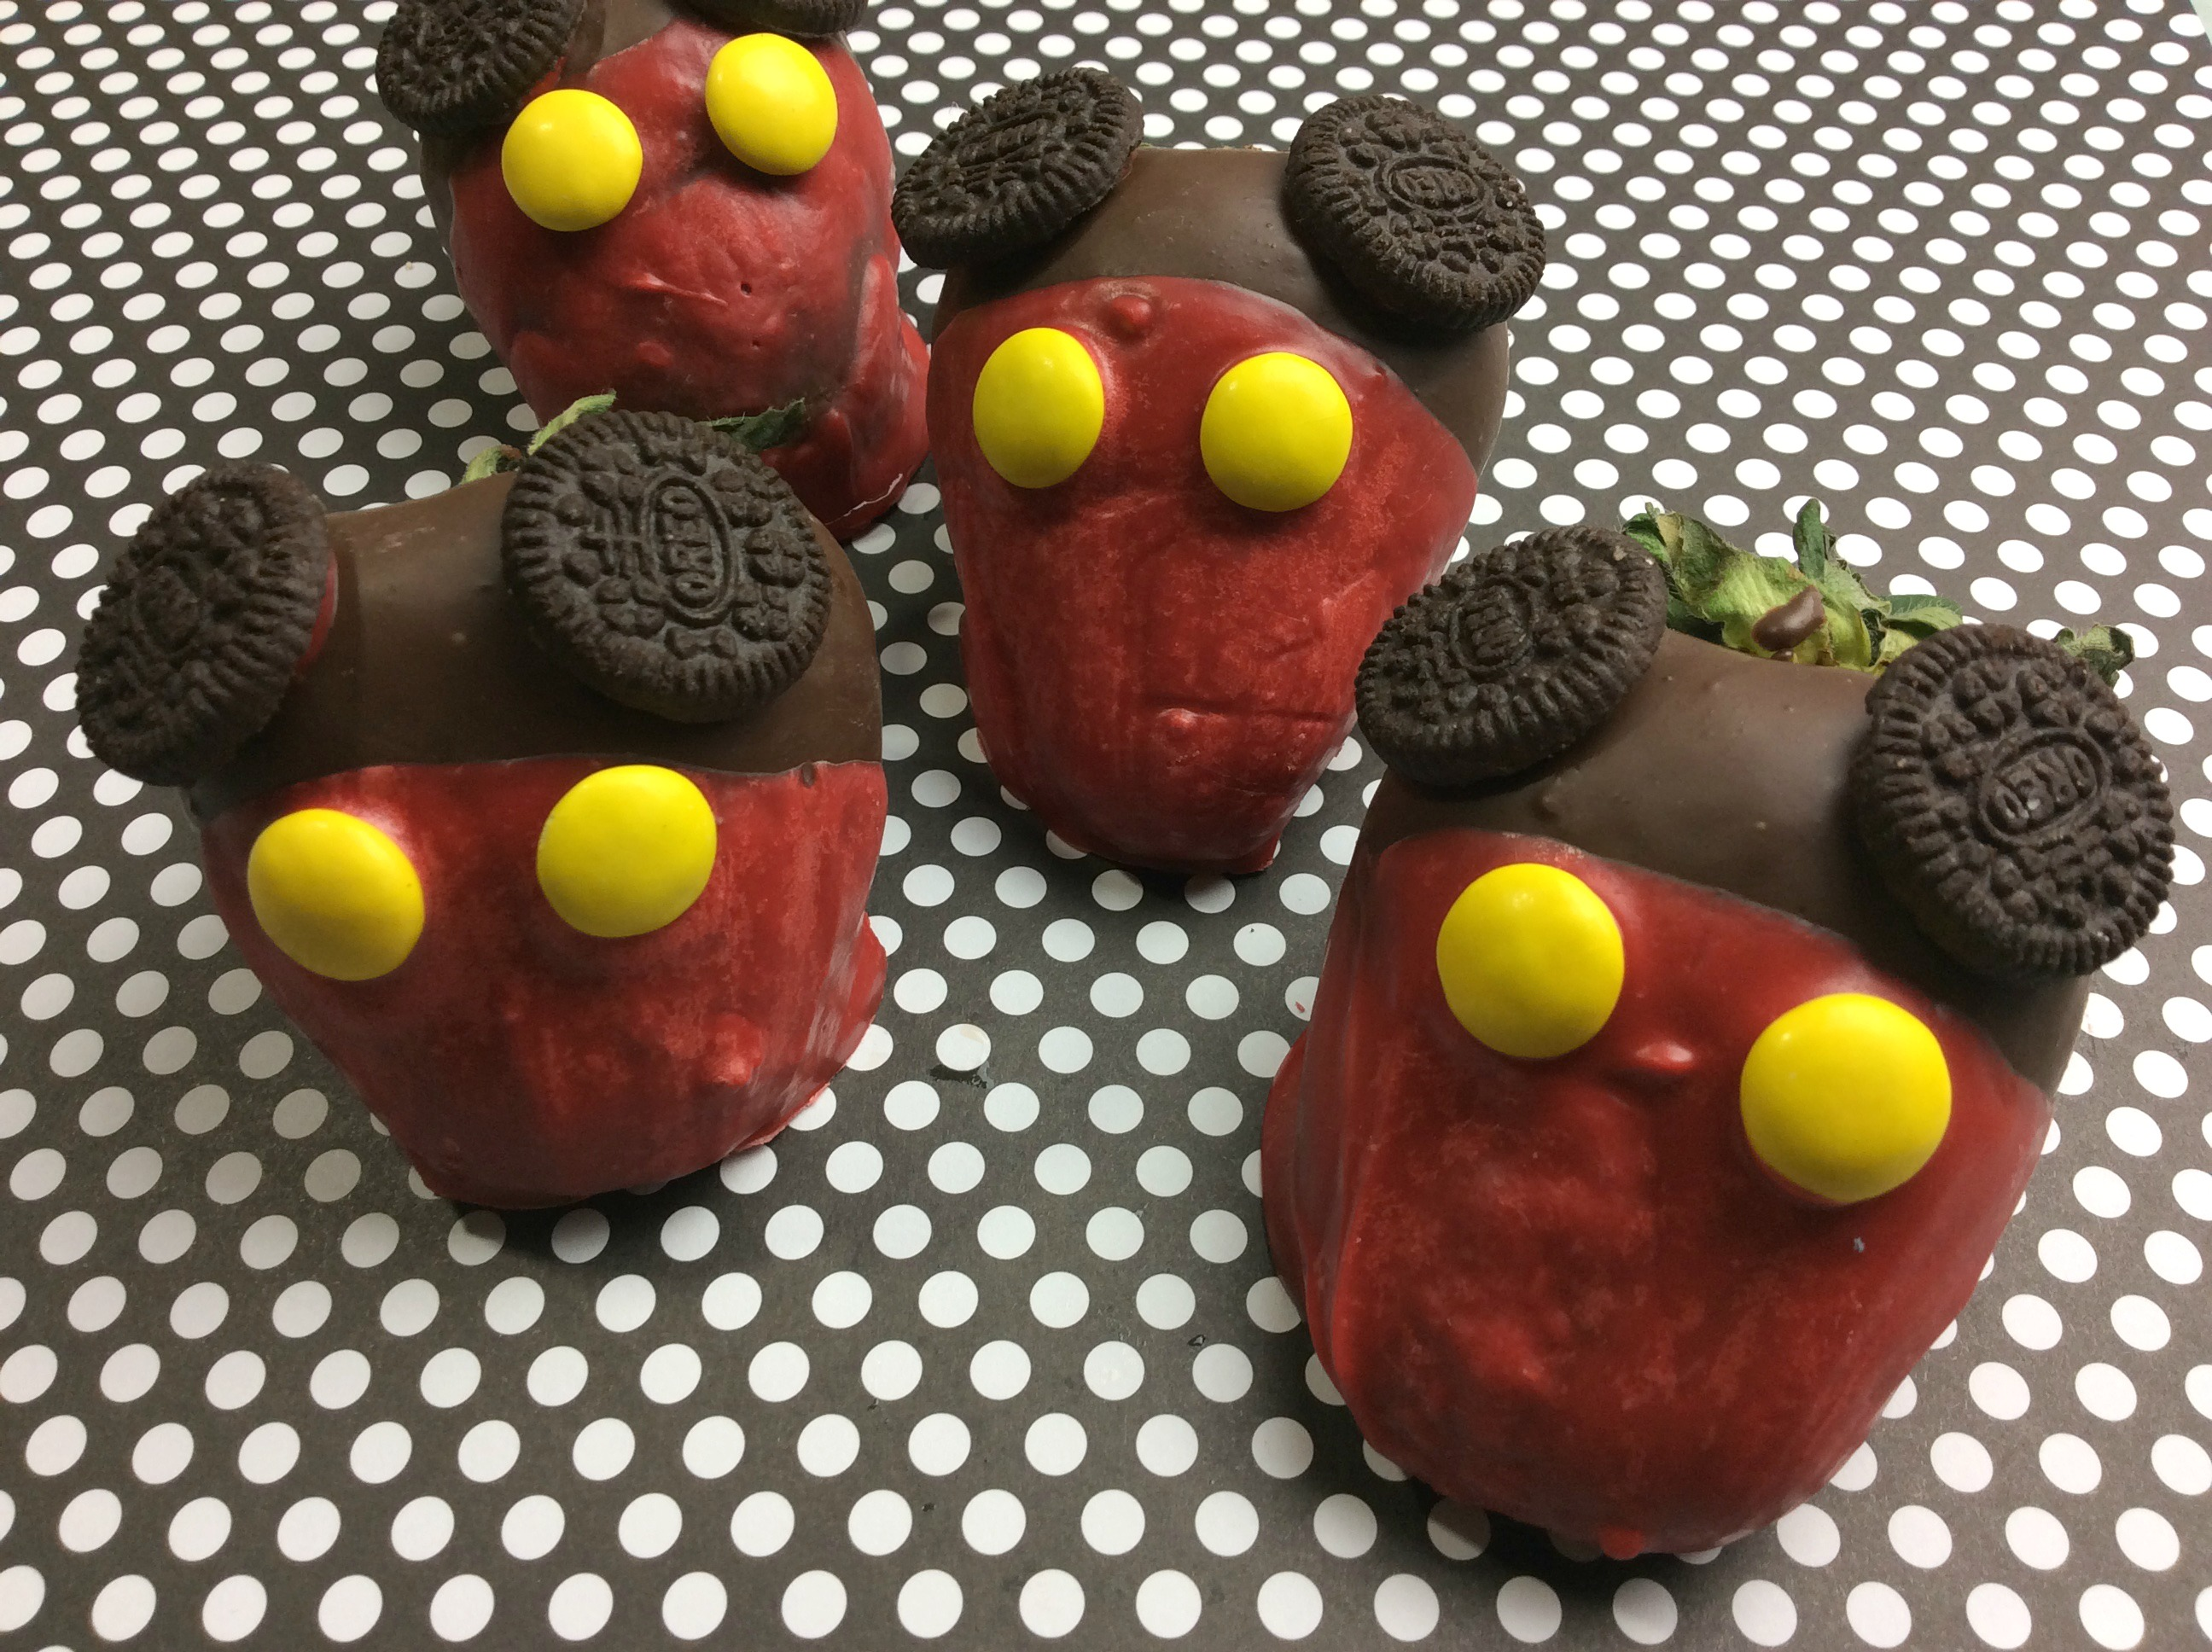 I think the only thing better than chocolate covered strawberries are Mickey Mouse chocolate covered strawberries. Easy to make and will leave your Disney fan smiling